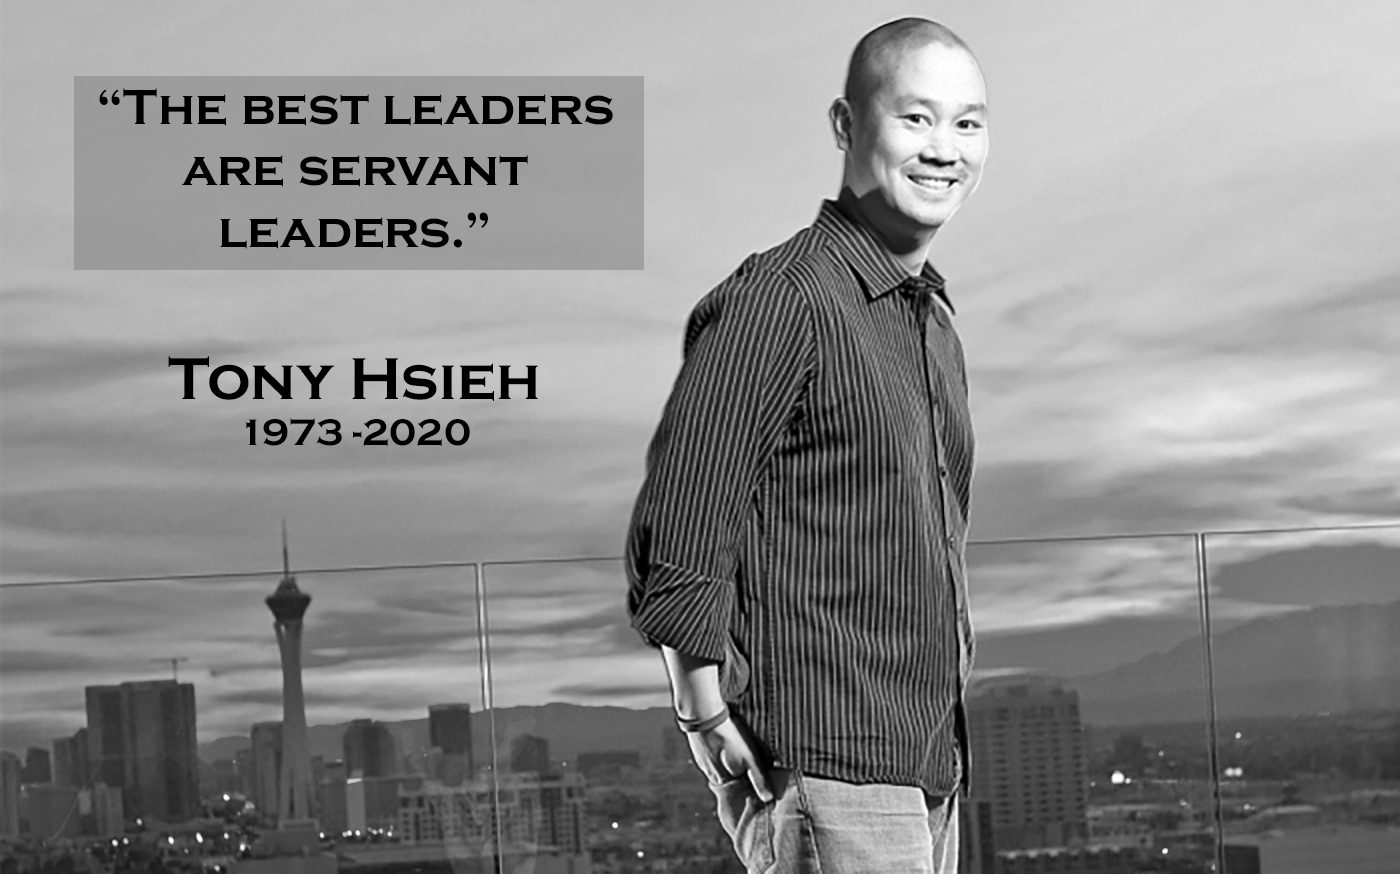 """Tony Hsieh standing on rooftop in black and white with his quote """"The Best Leaders are Servant Leaders"""", his name and the years 1973 to 2020"""